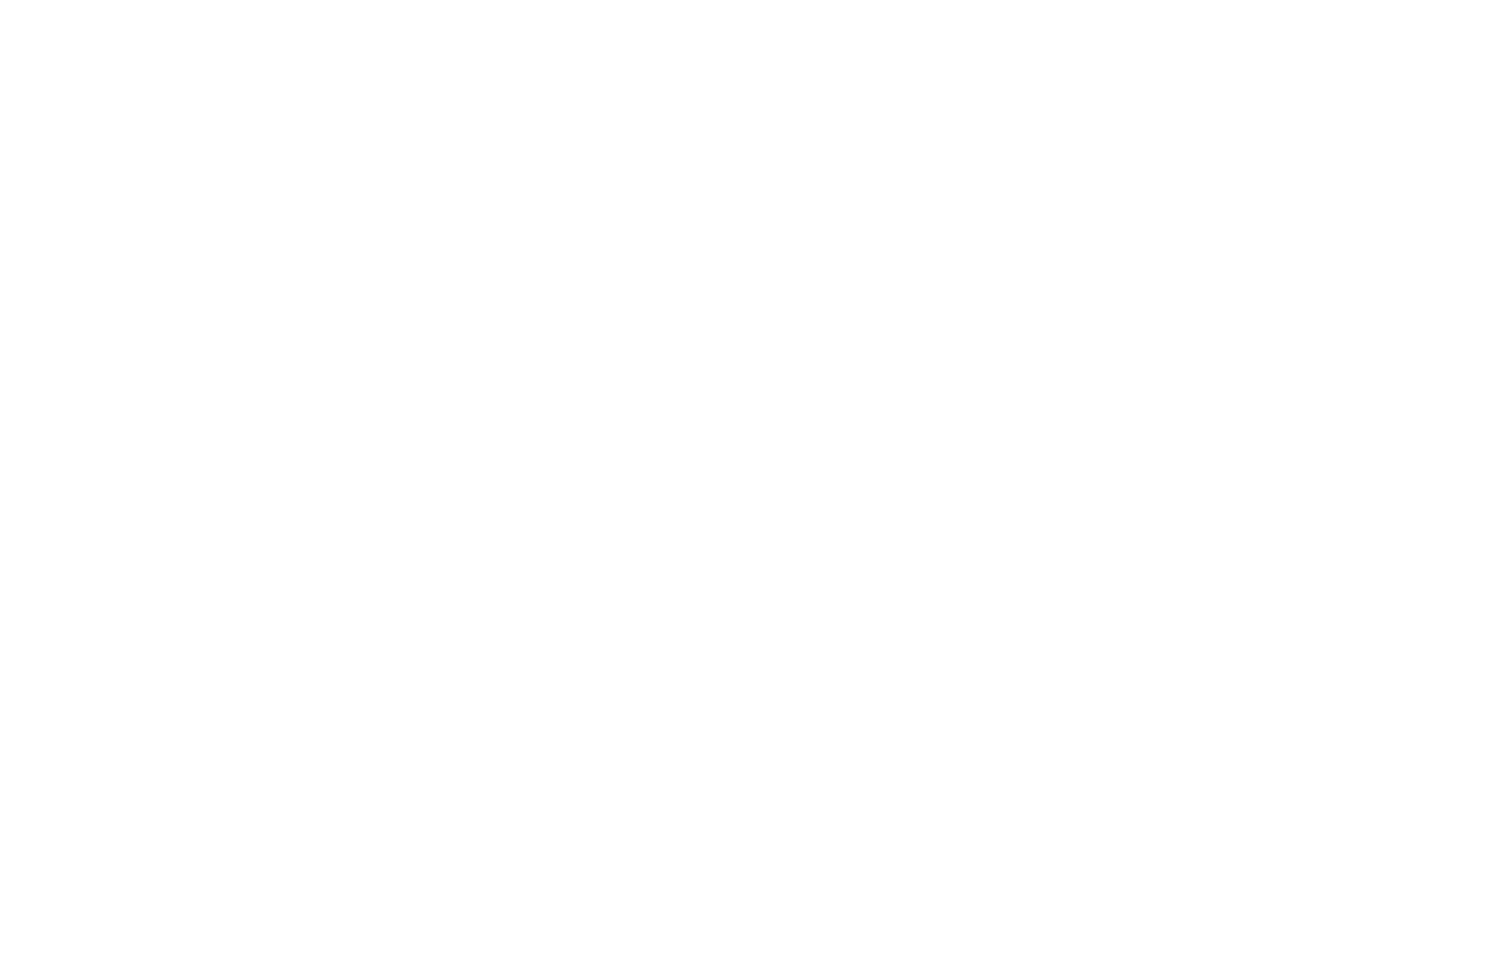 Urban Bliss Holistic Boutique